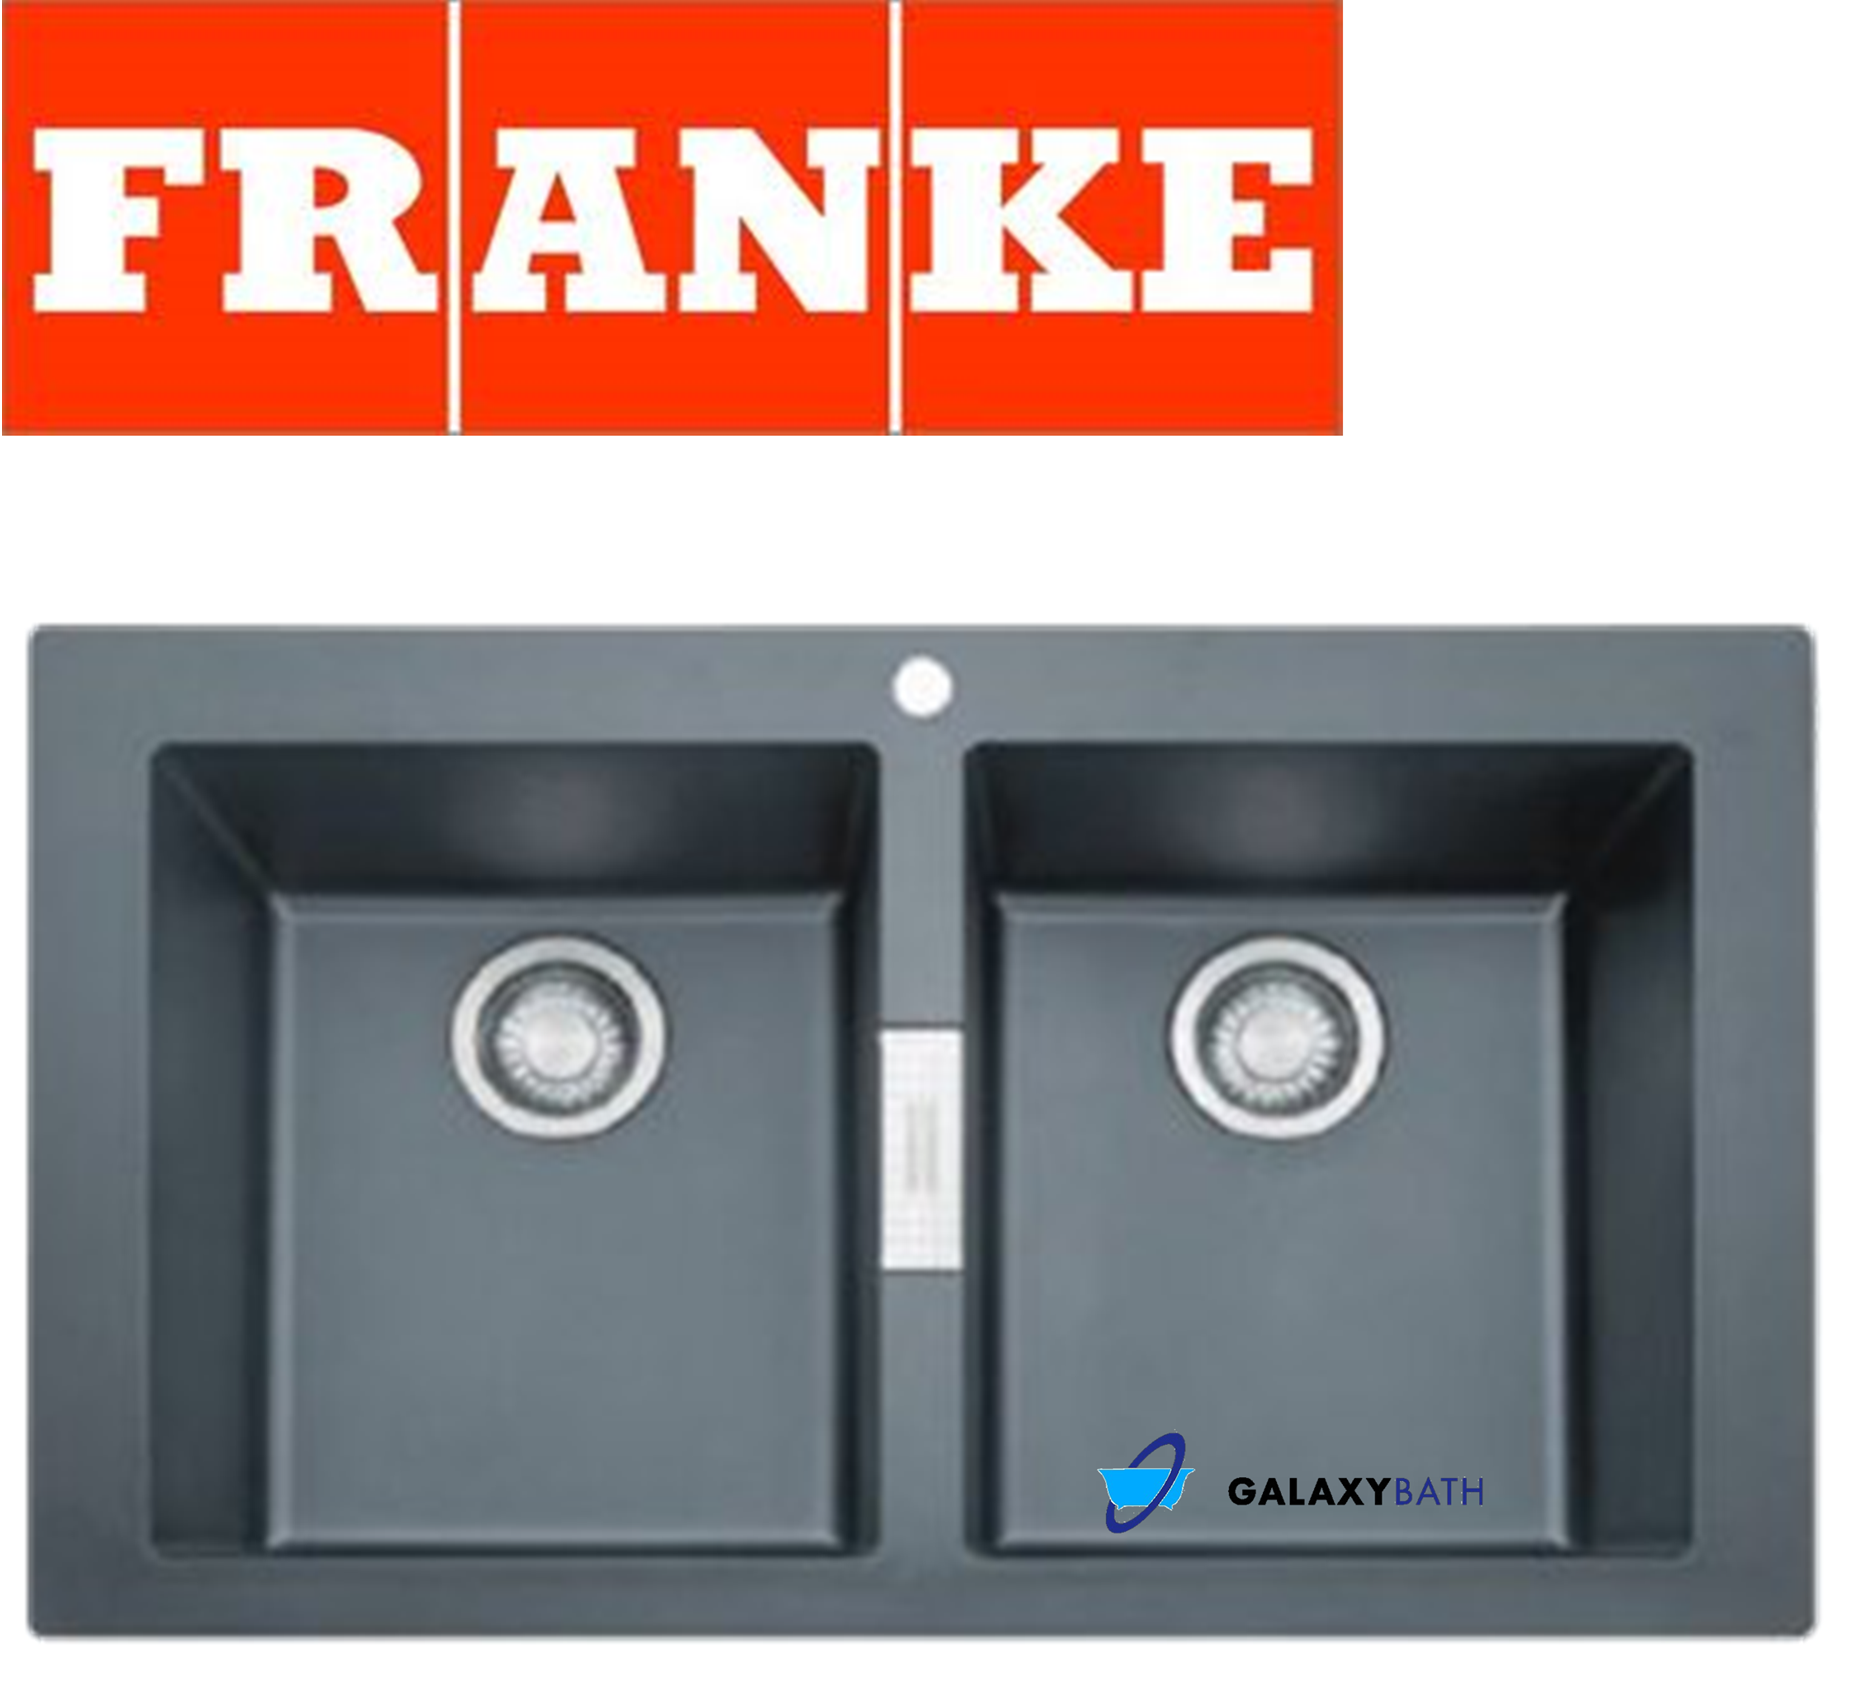 Franke sirius black onyx tectonite 2 0 bowl square kitchen sink ove